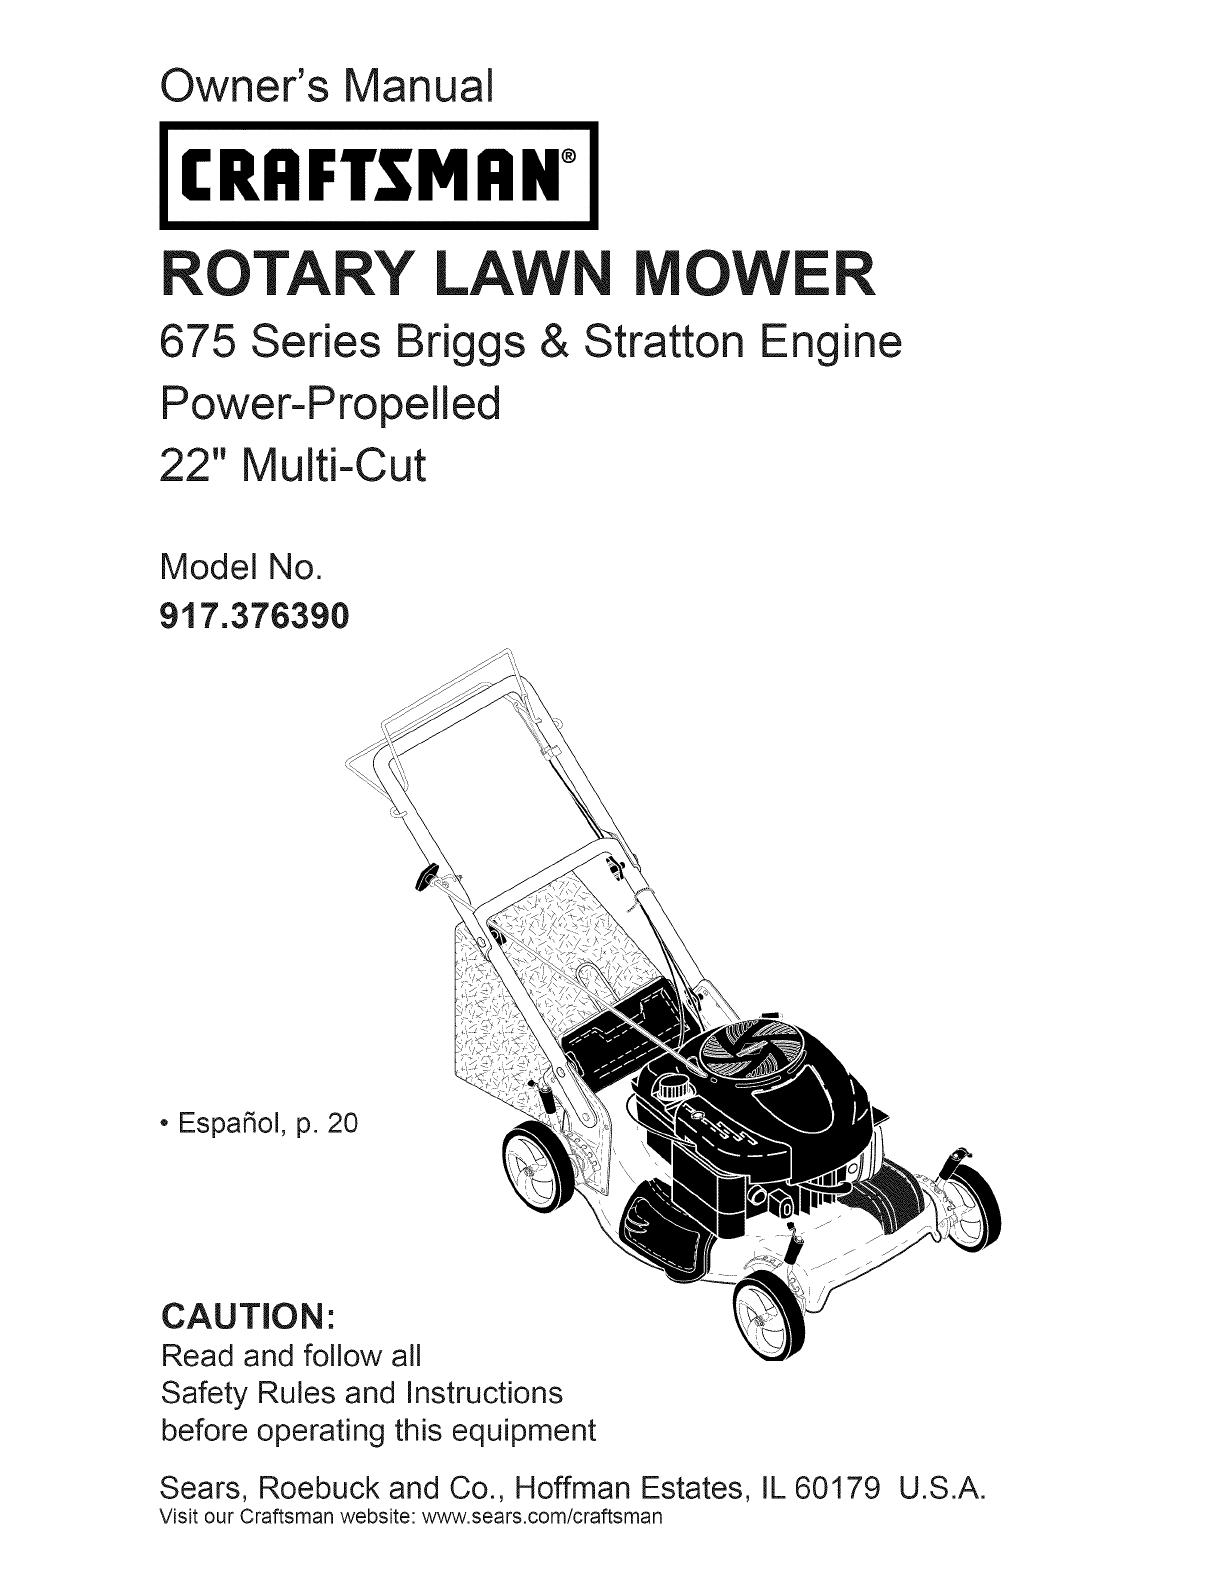 craftsman lawn mower 917 376390 user guide manualsonline com